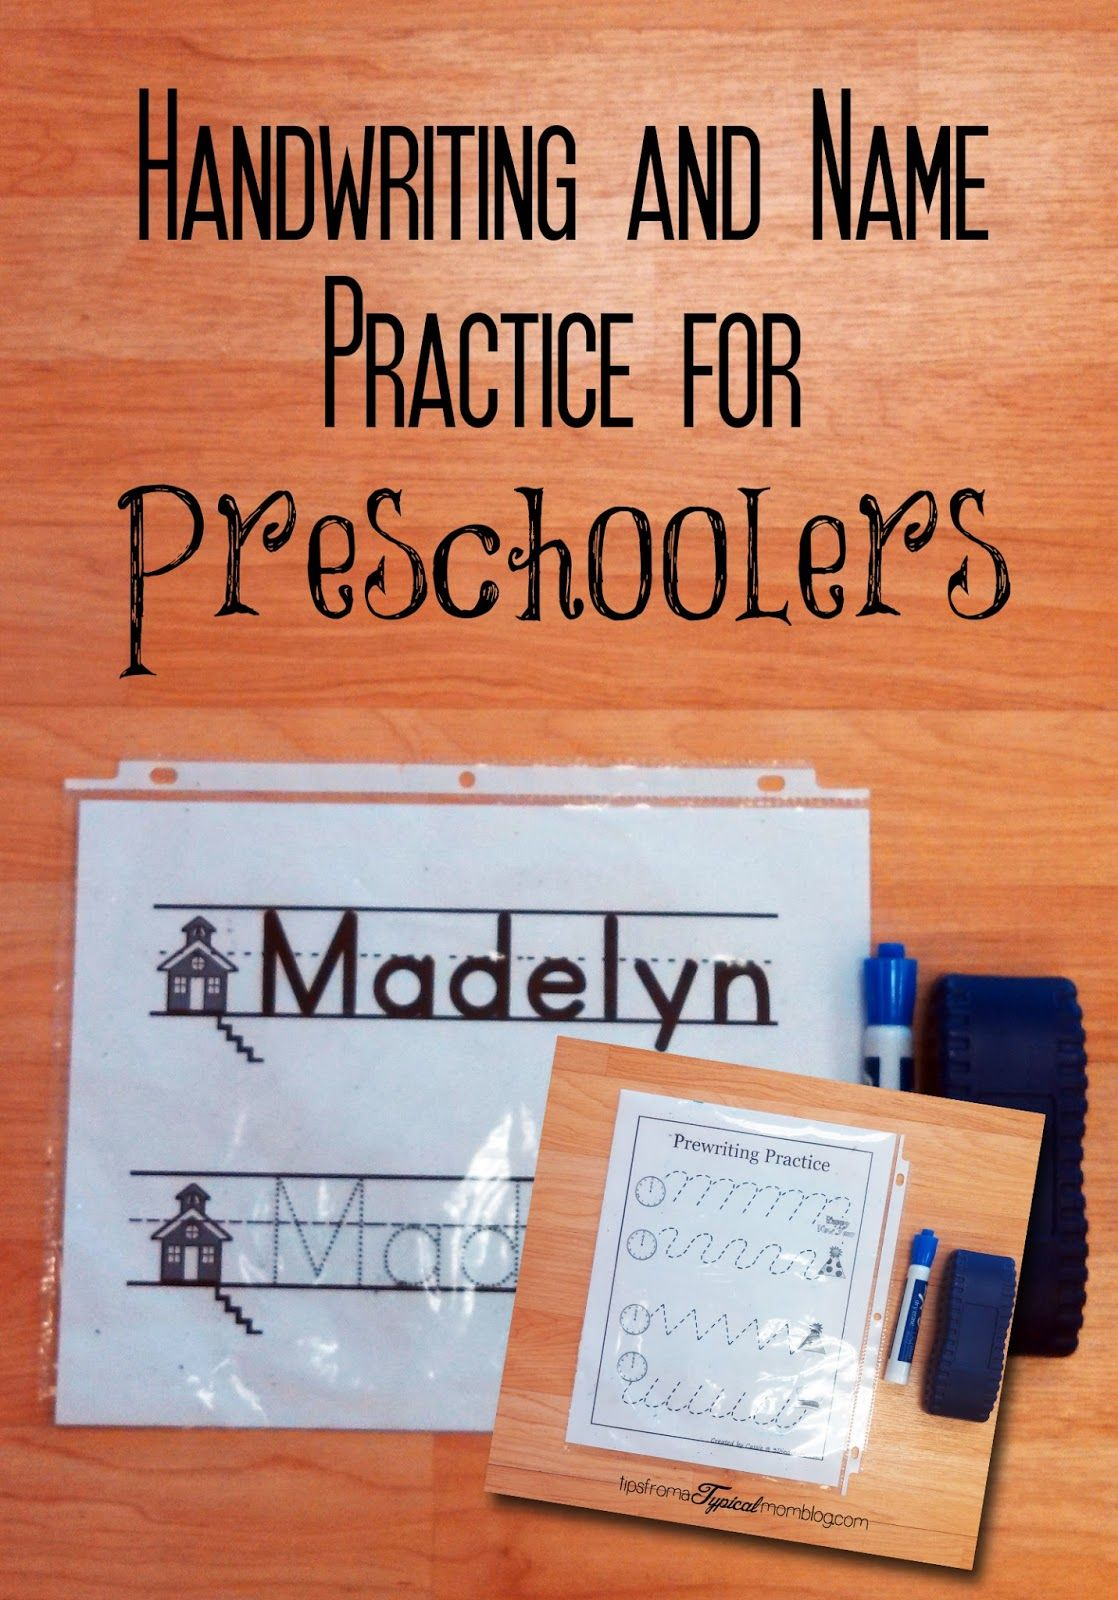 Name and Handwriting Practice Ideas for Preschoolers | Handschriften ...